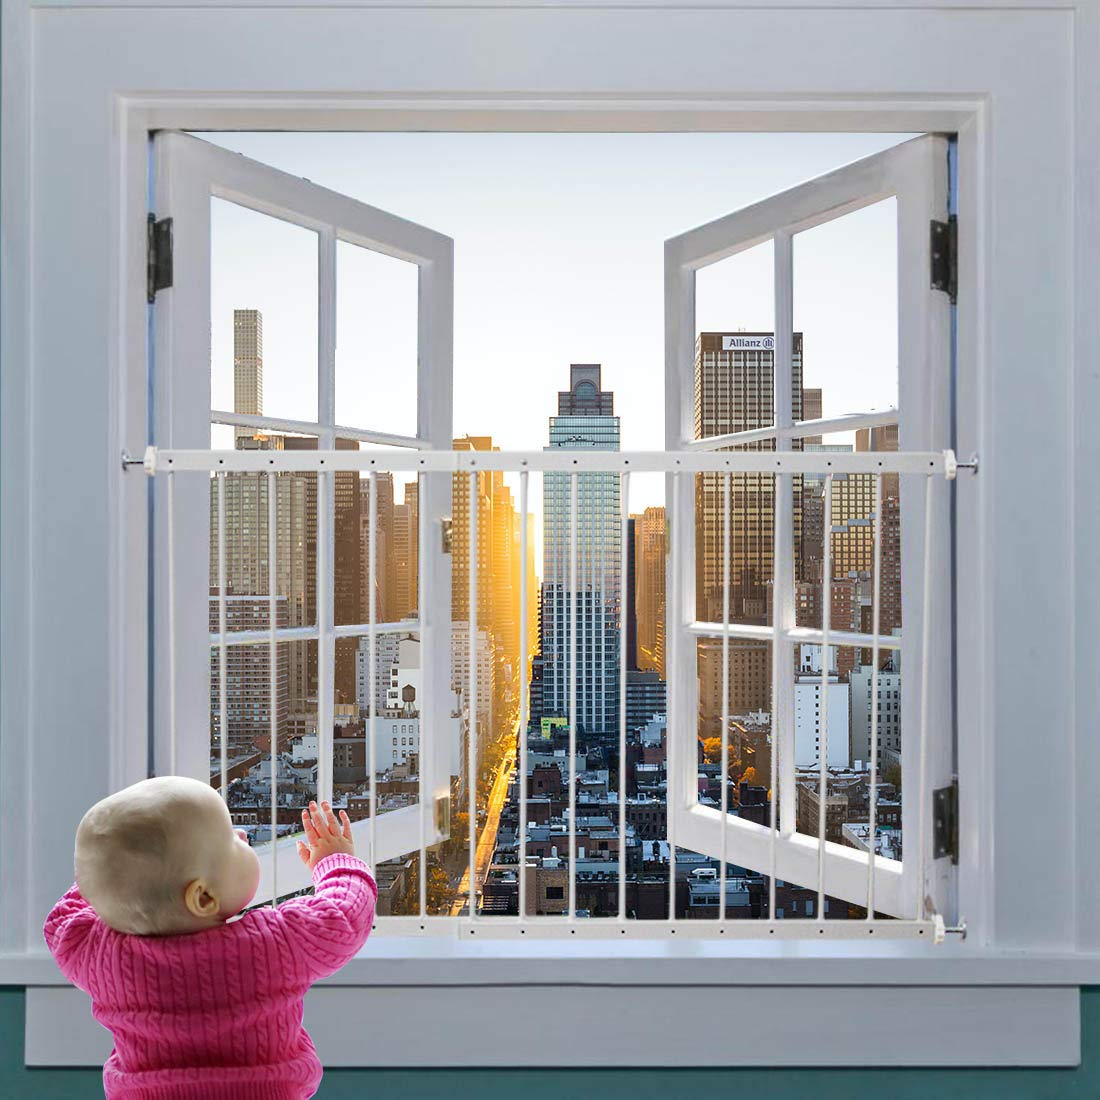 Amazon Com Fairy Baby Window Guards For Children Adjustable Wide Child Safety Window Guard Prevents Accidental Falls Home Security Childproof Interior Bar Guard For Windows Wide 31 49 36 22 1 Panel Baby